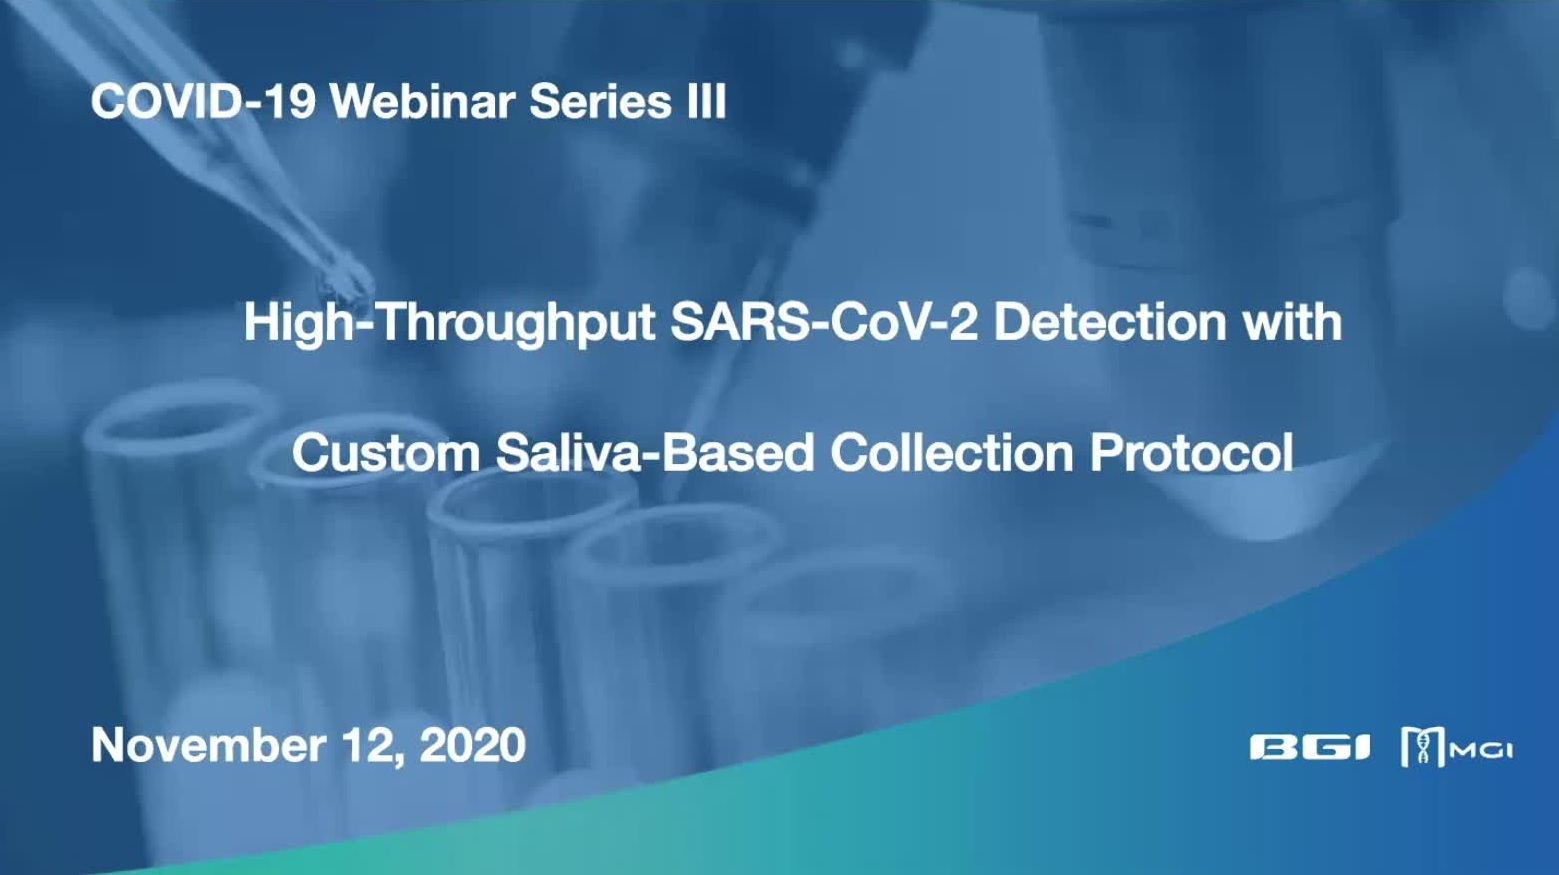 High-Throughput SARS-CoV-2 Detection with Custom Saliva-Based Collection Protocol Description